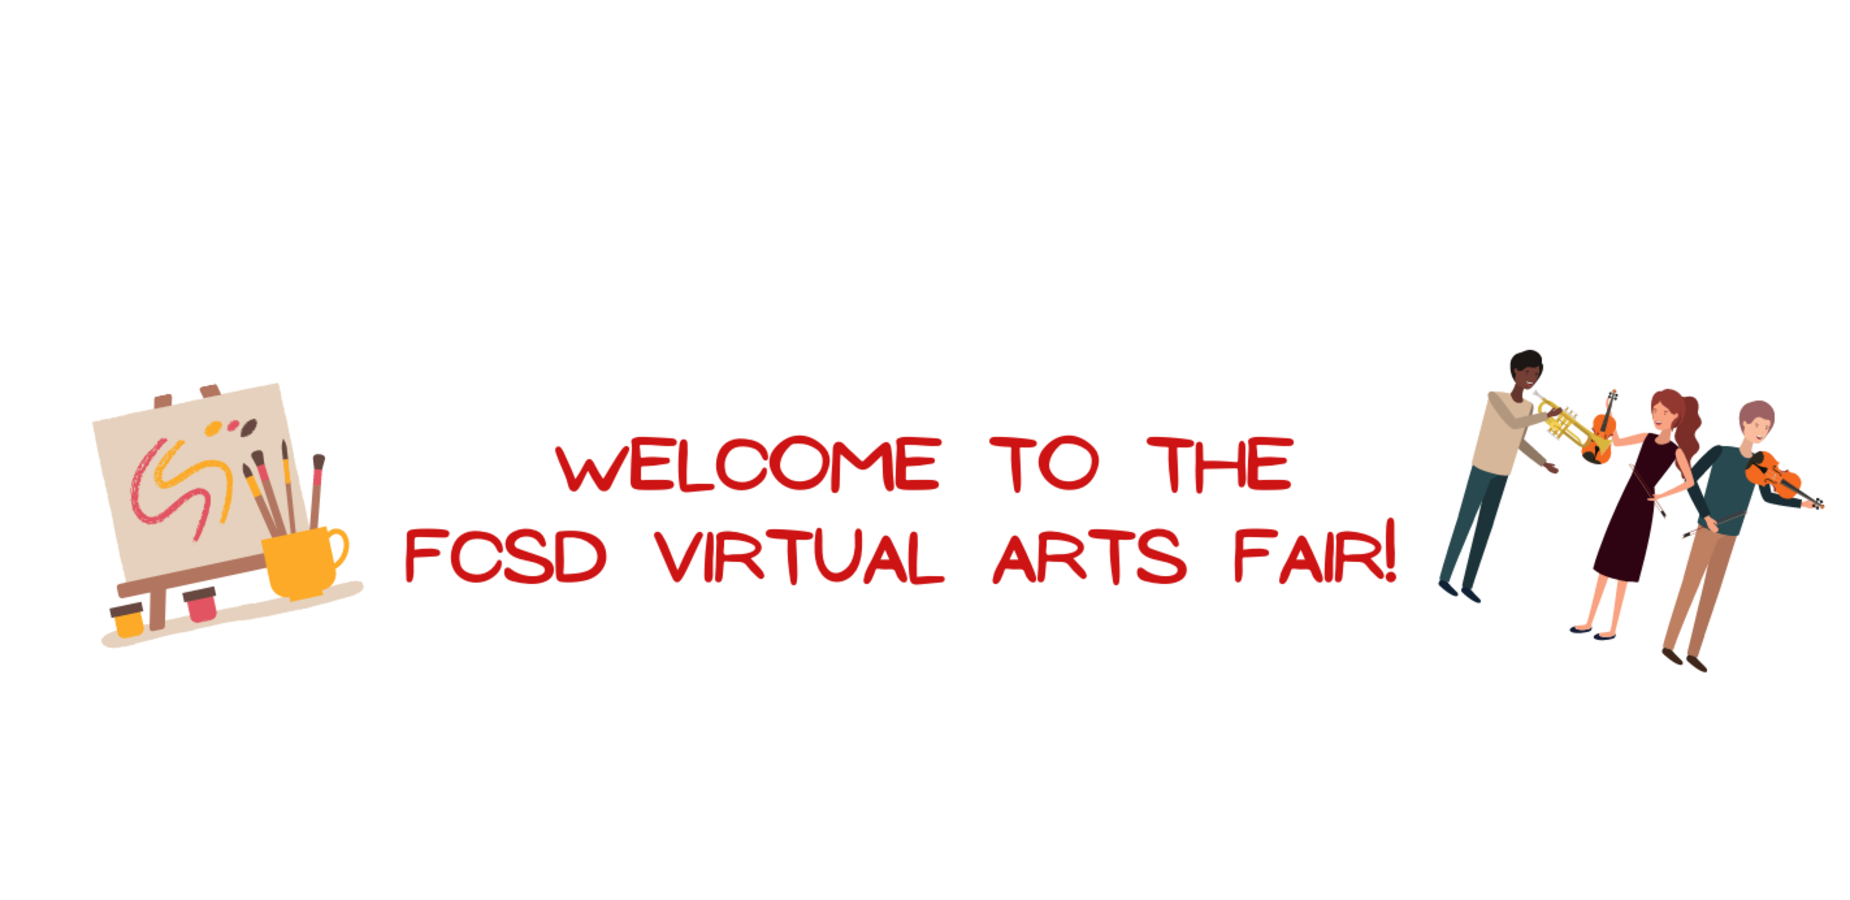 Click on this image to access the links for the virtual arts fair!